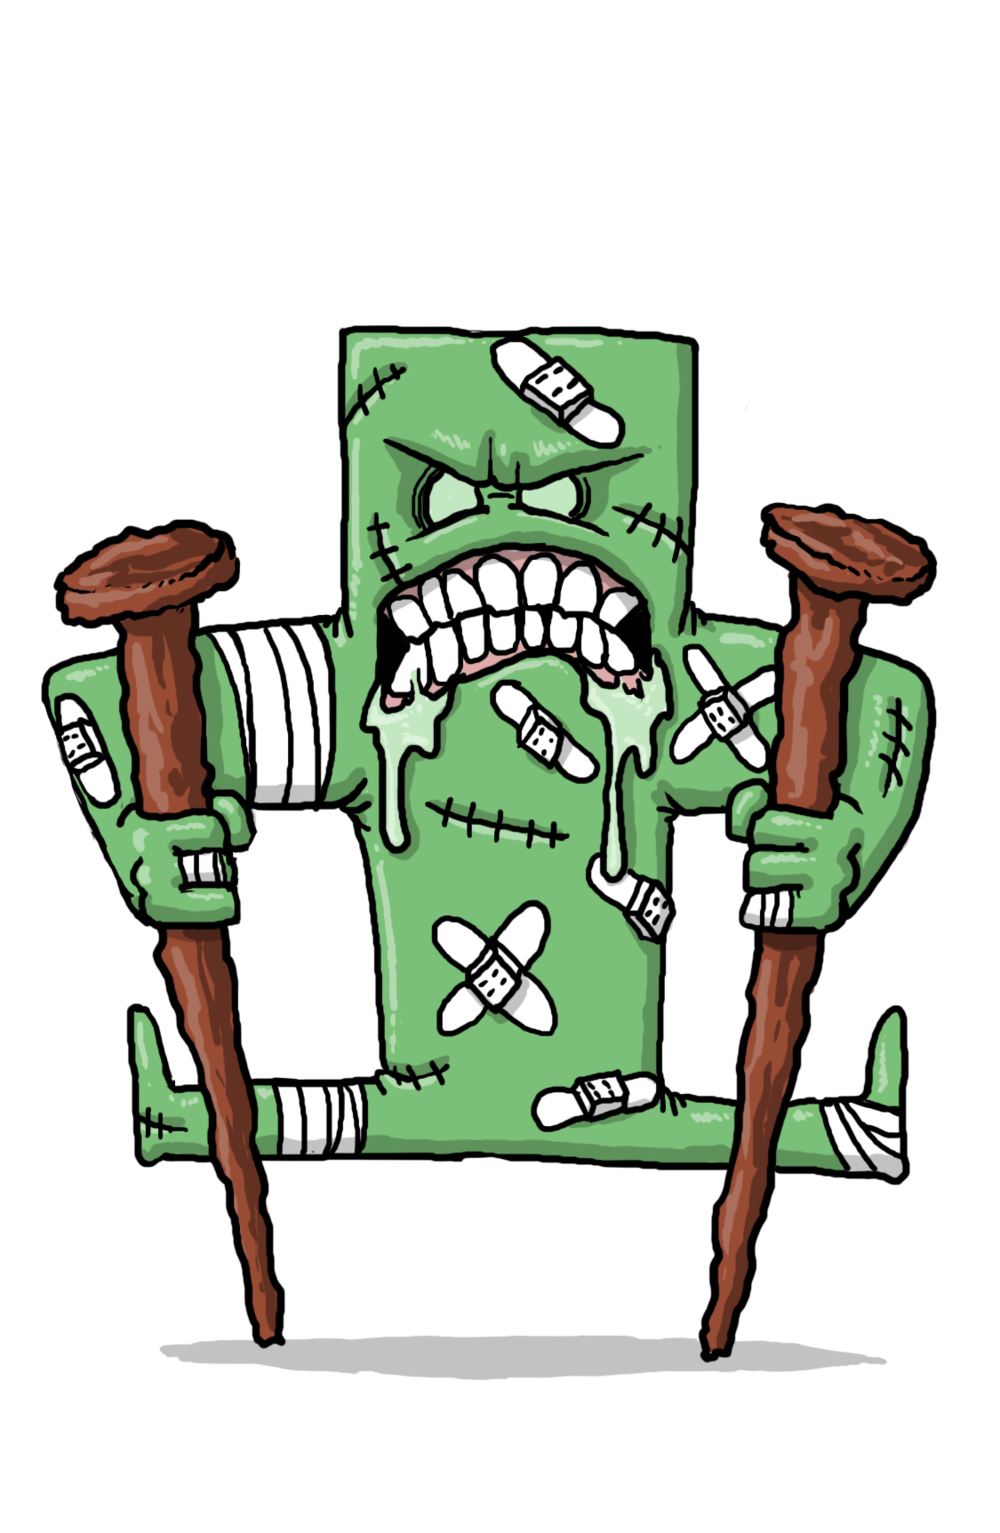 Fever clipart typhoid. Characters vaxcards tetanus ii